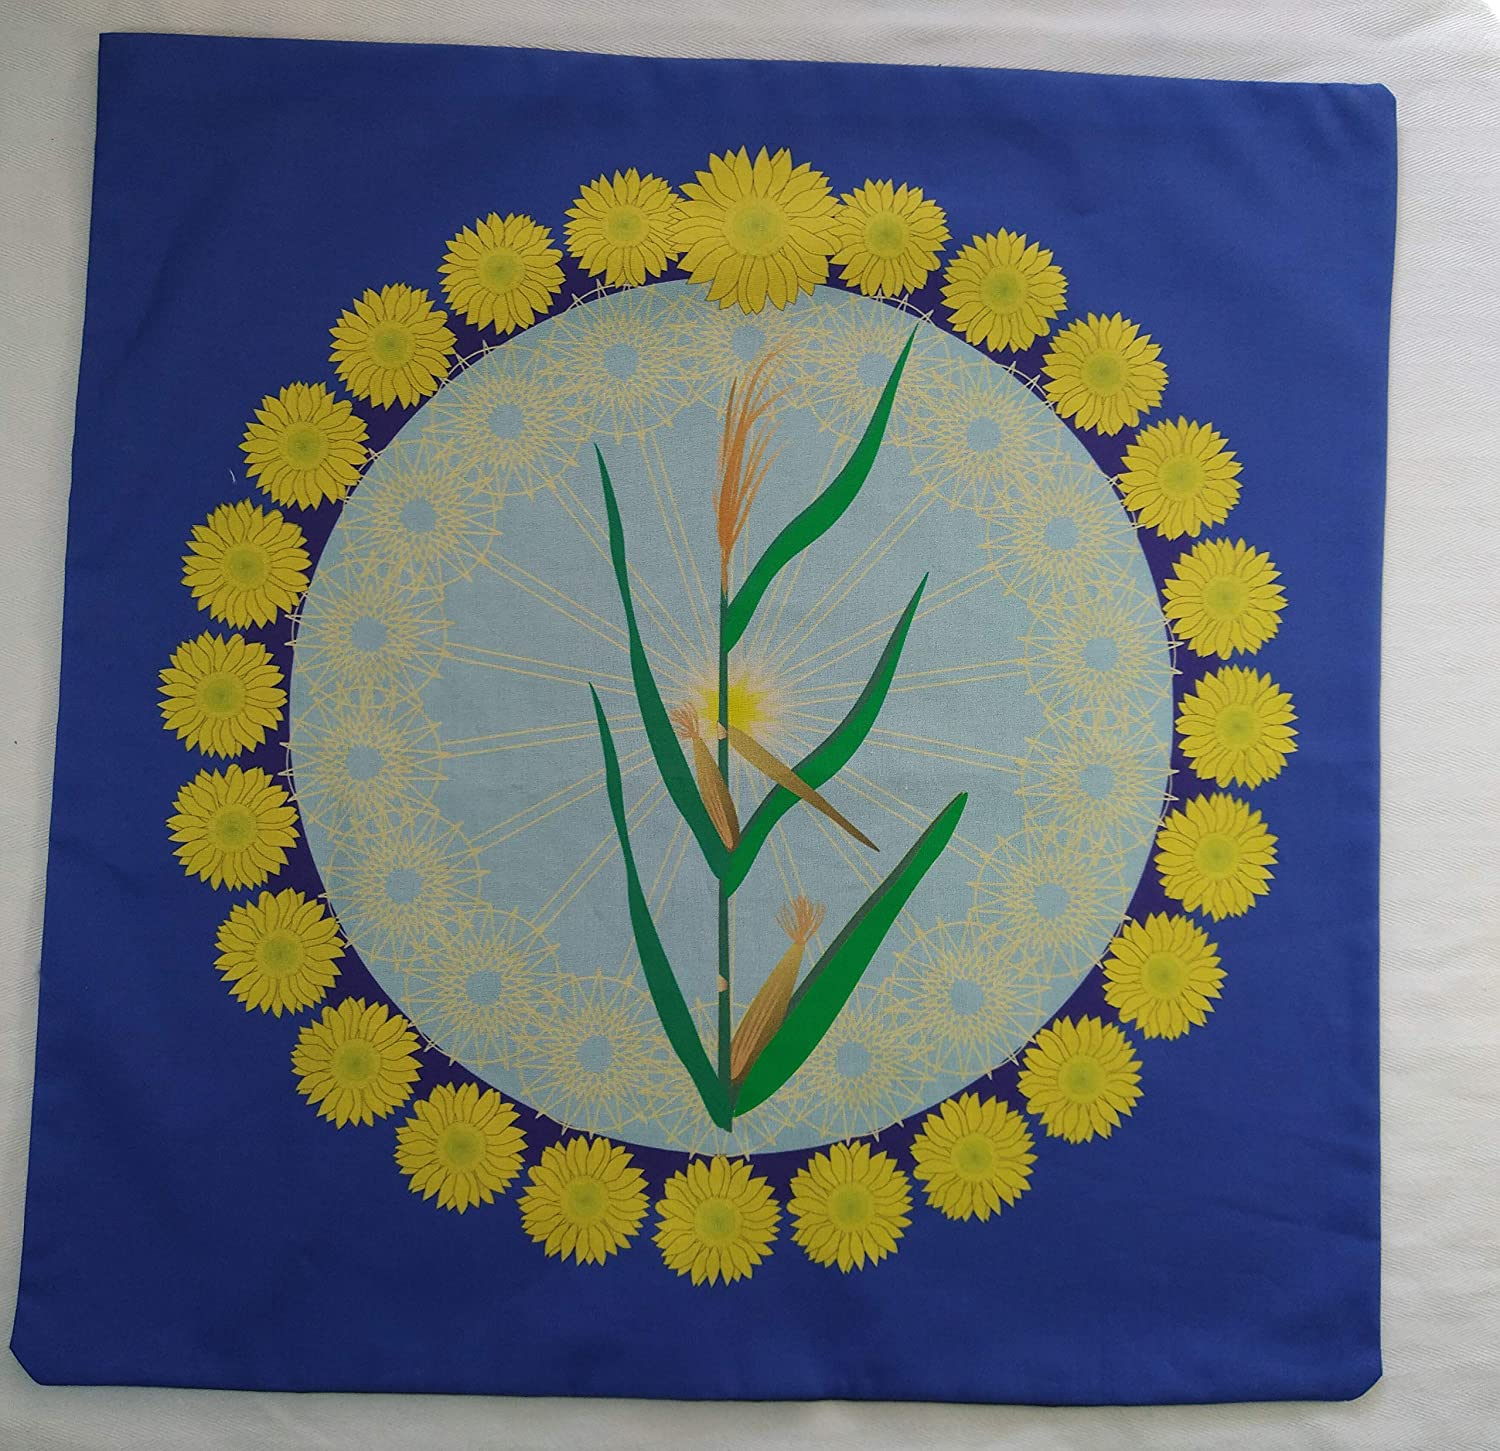 Altar Cloth or Tarot Corn - 5 ☆ Inventory cleanup selling sale popular Harvest